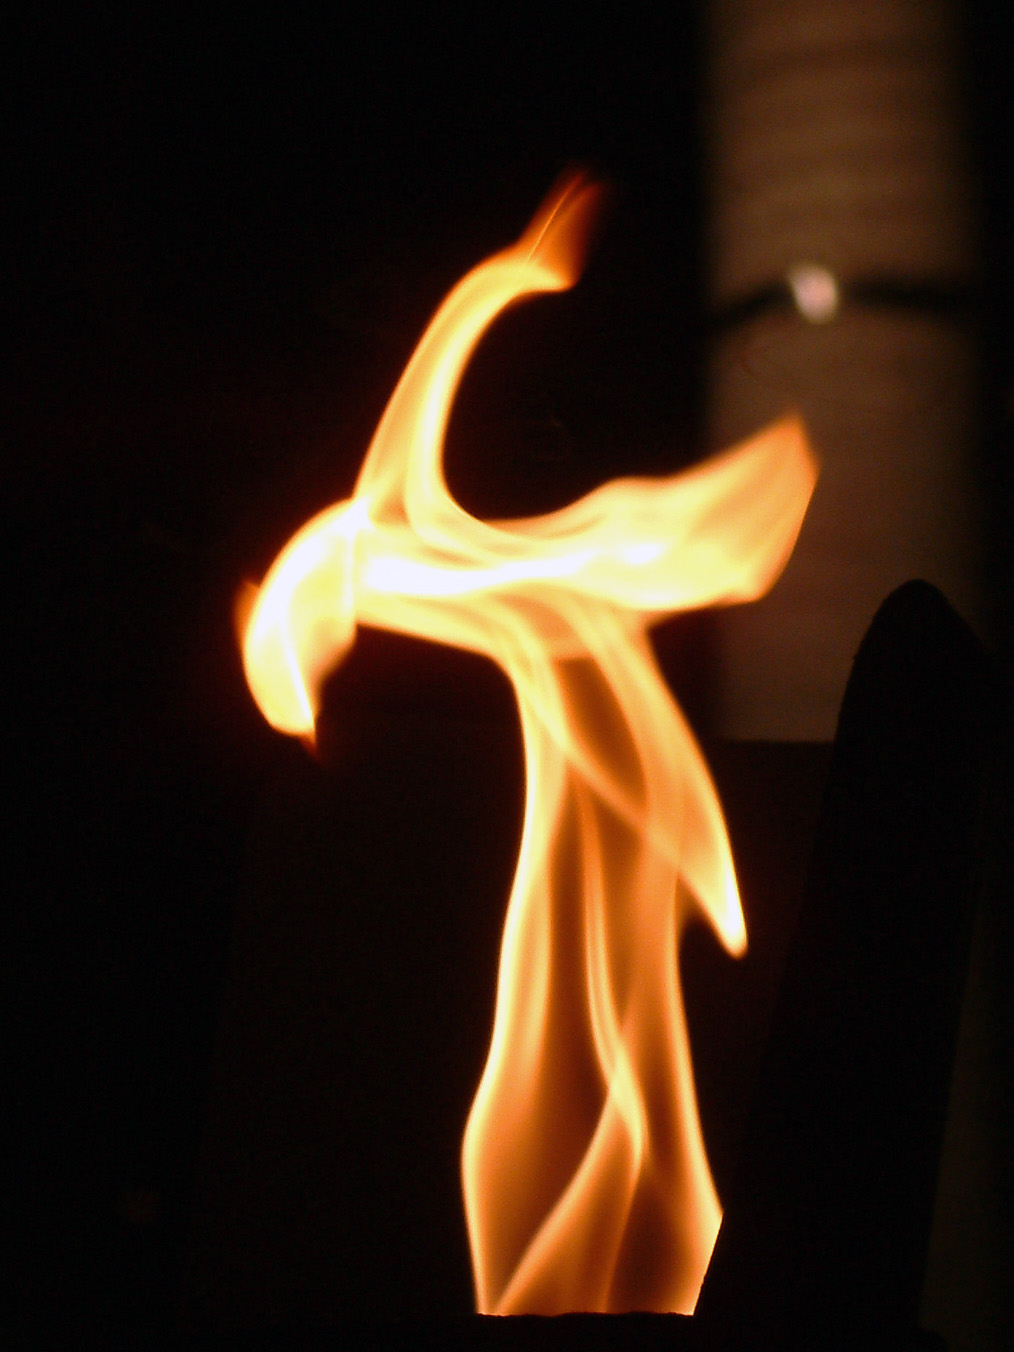 http://upload.wikimedia.org/wikipedia/commons/1/16/Australia_Cairns_Flame.jpg